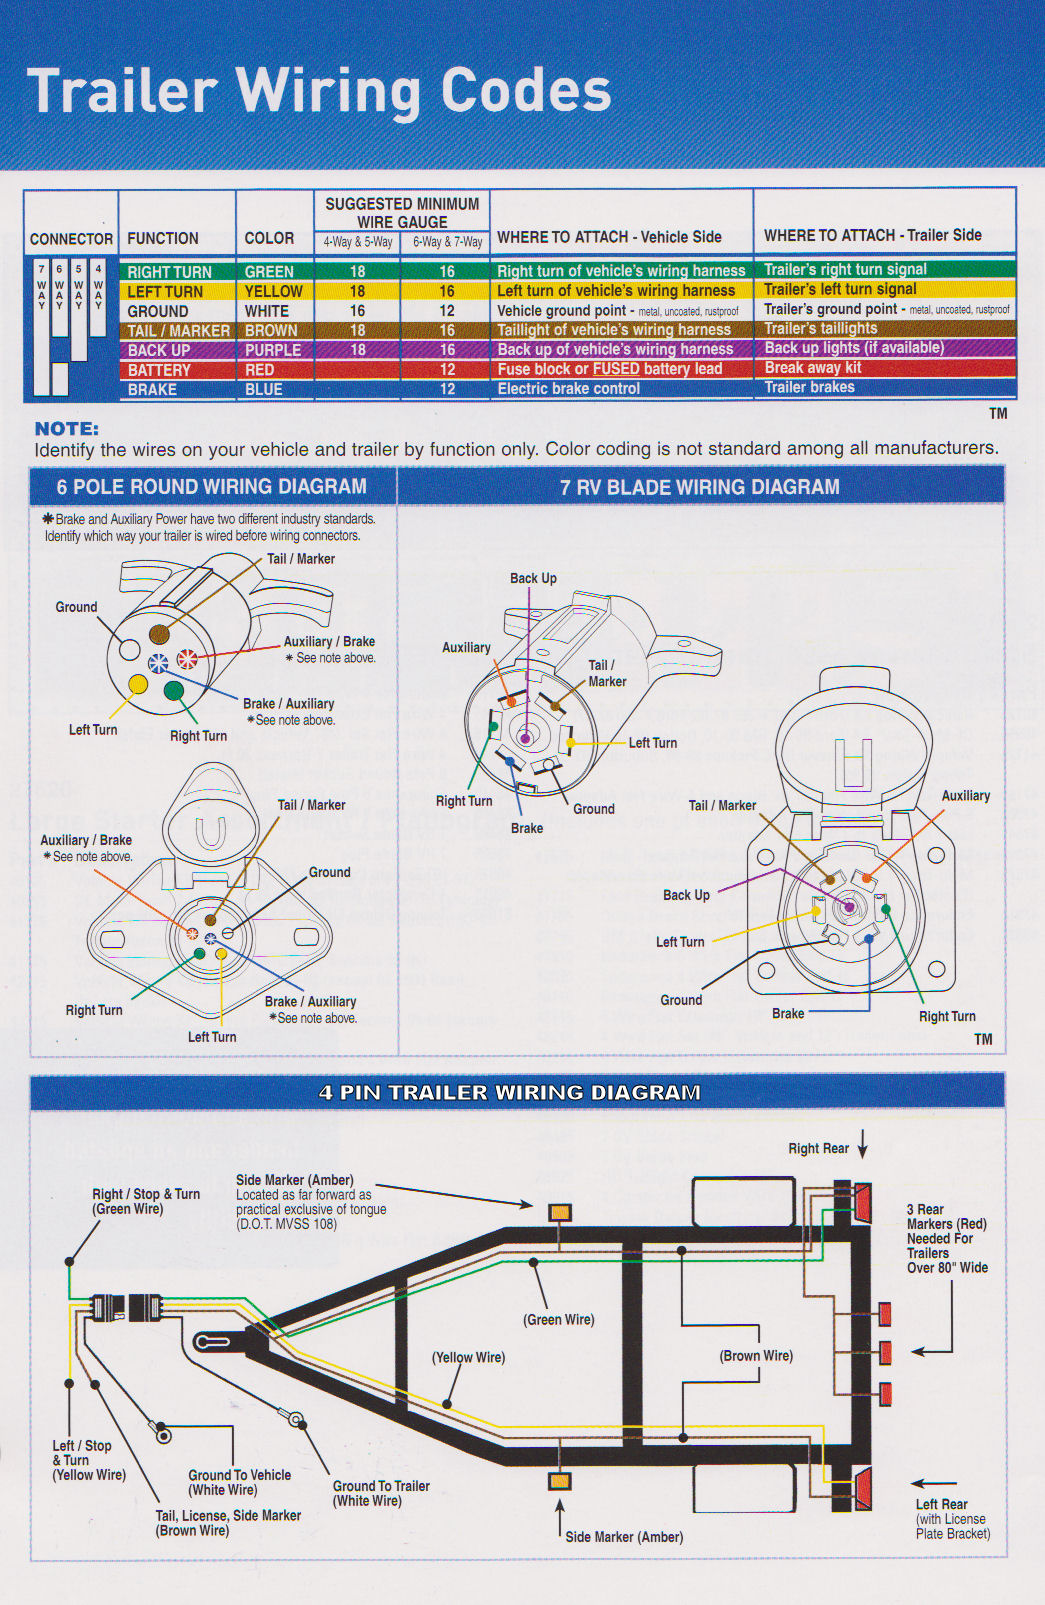 Trailer Wiring Diagram trailer wiring diagram we are the trailer pros! flatbed trailer wiring diagram at reclaimingppi.co